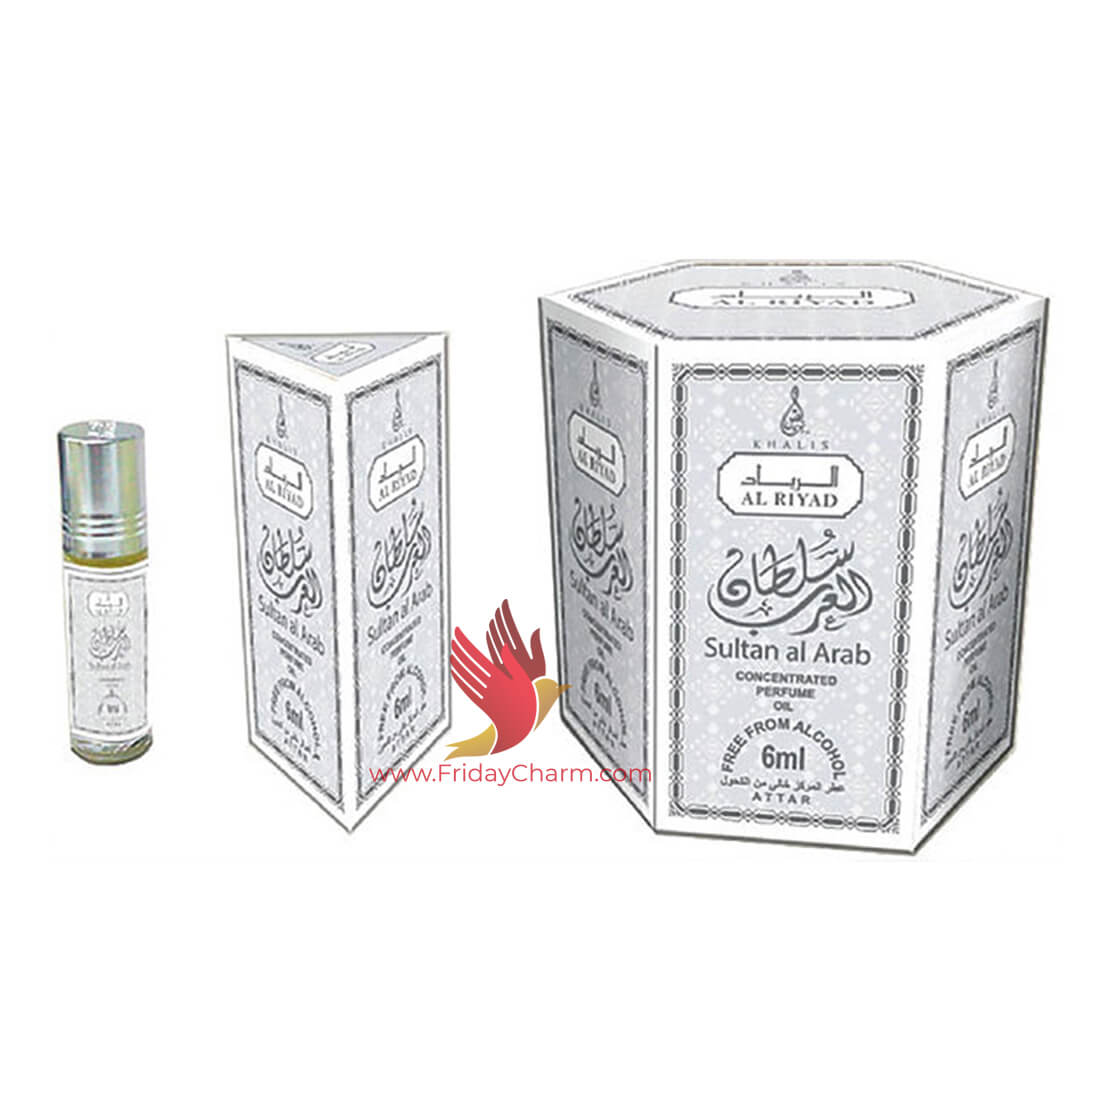 Khalis Sultan Al Arab Fragrance Attar 6ml  Pack of 6